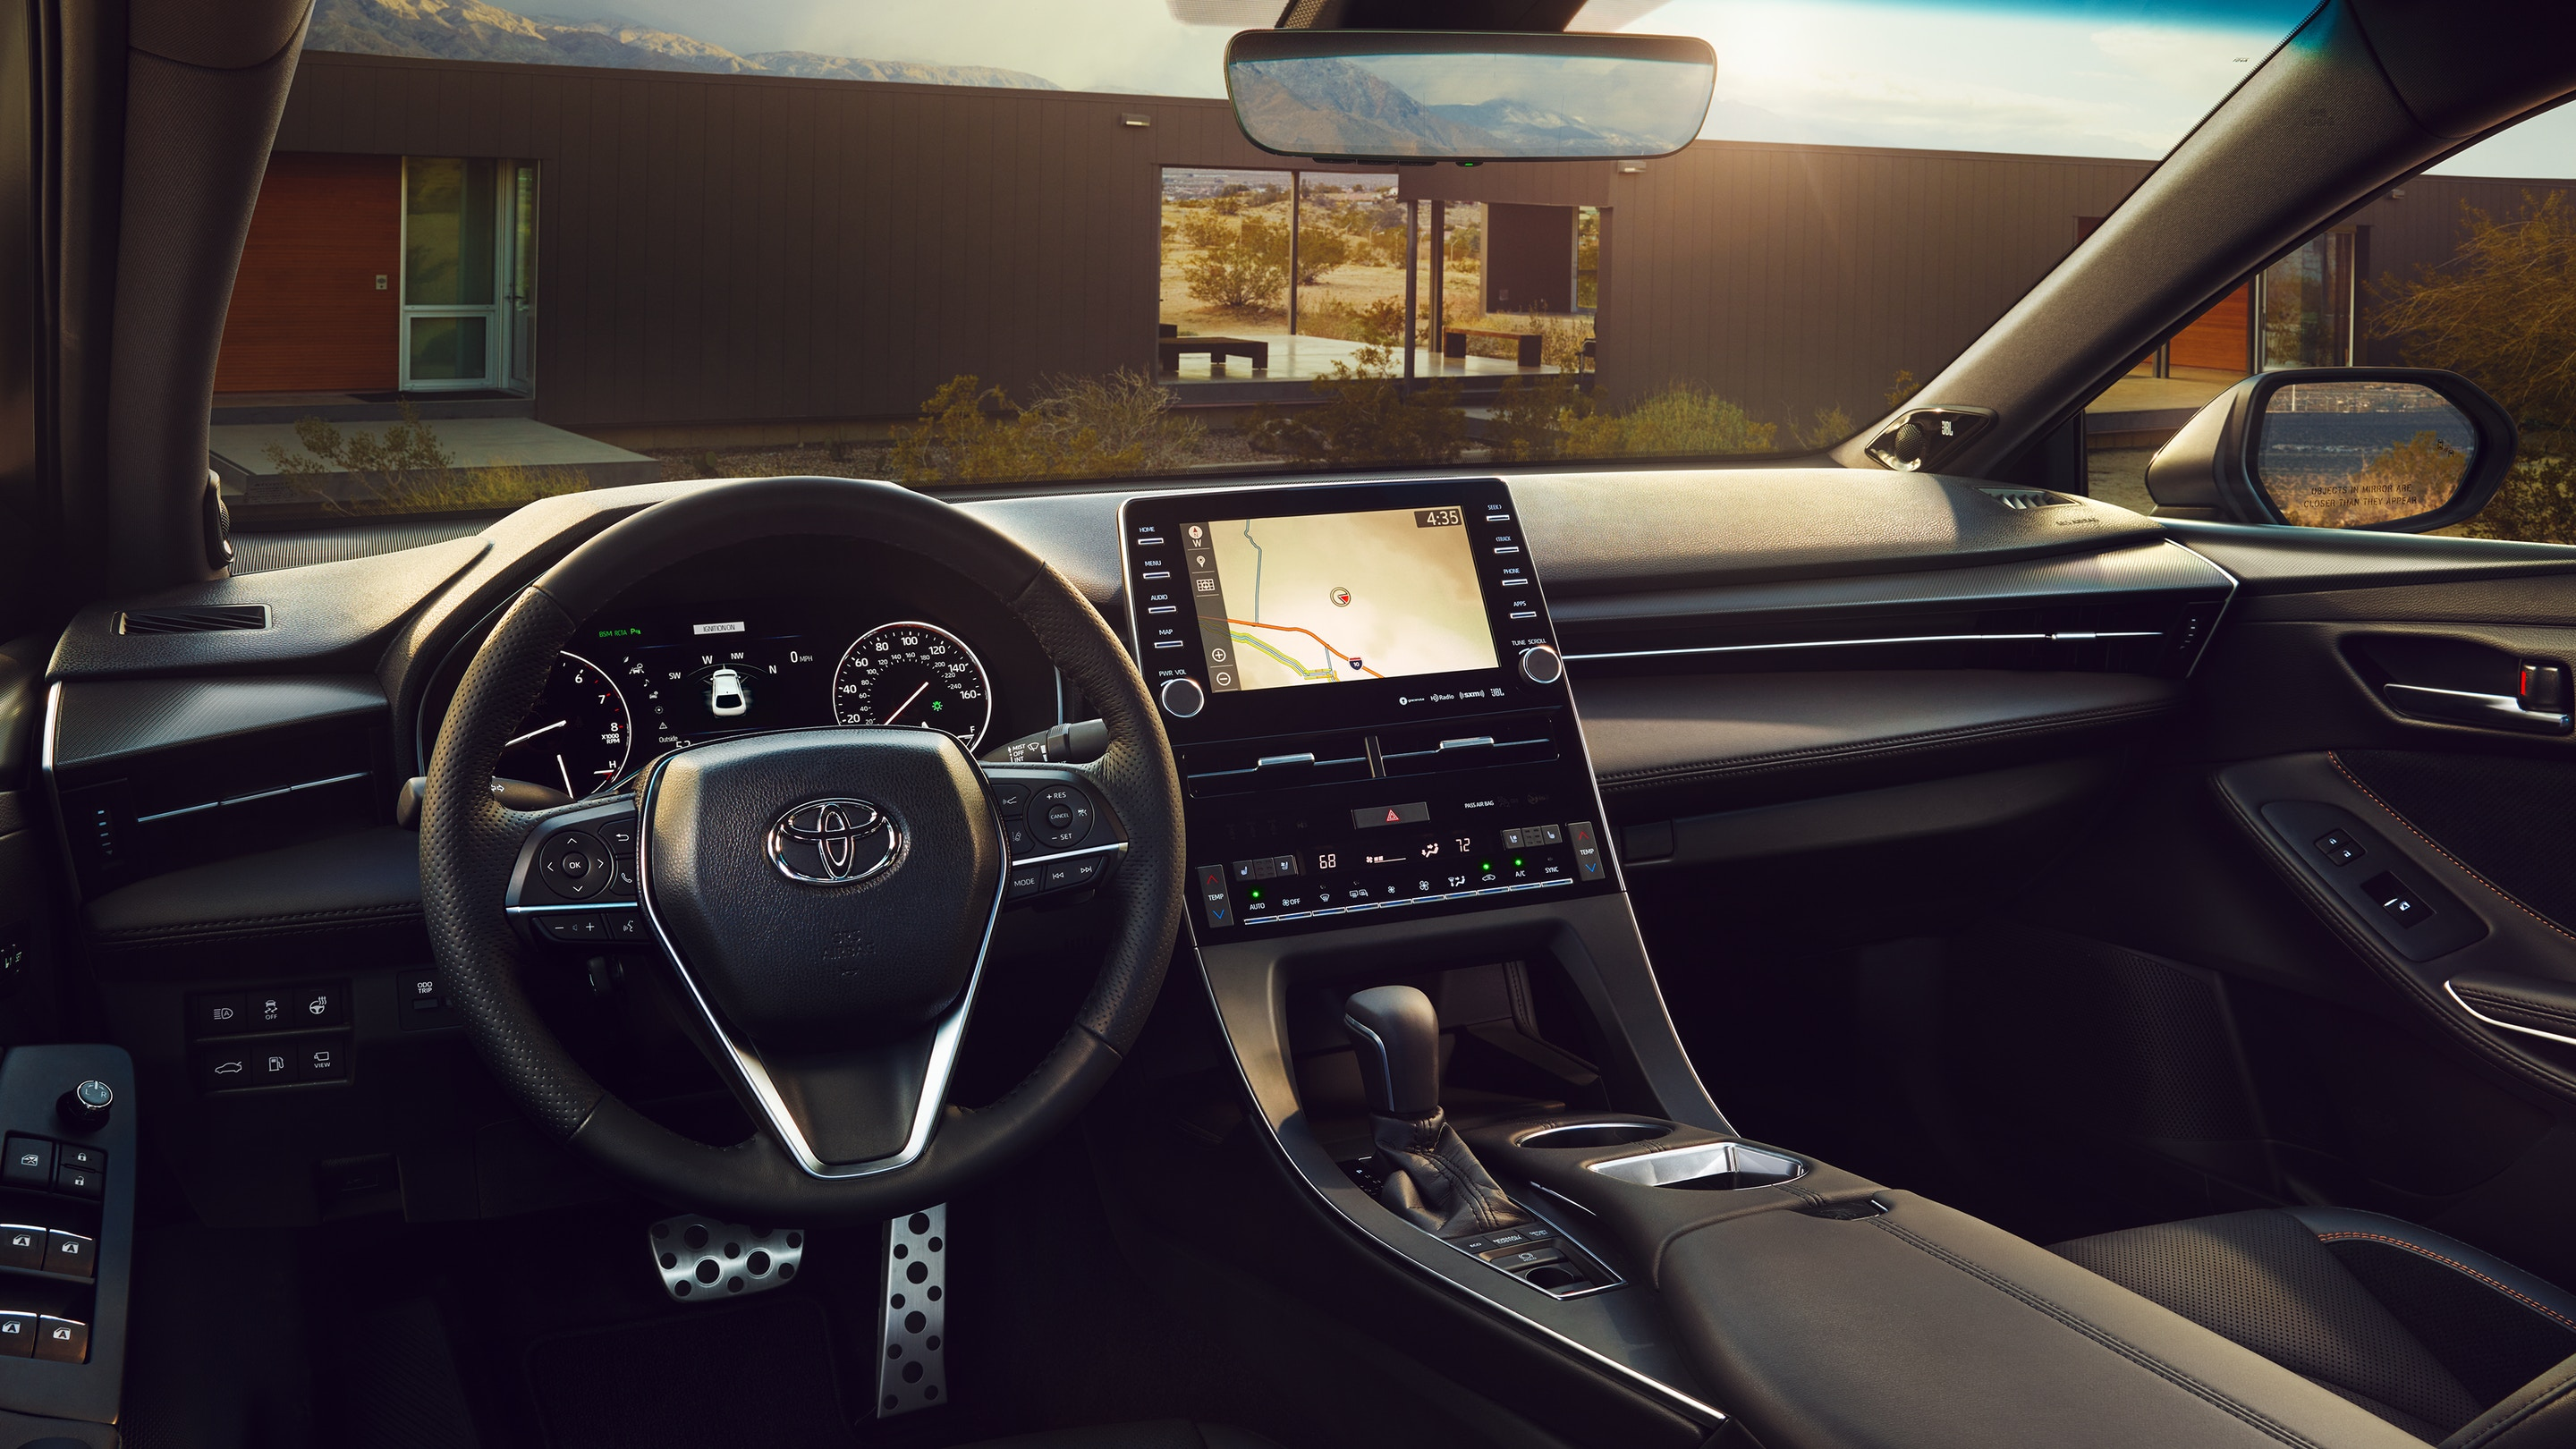 2020 Toyota Avalon - Interior